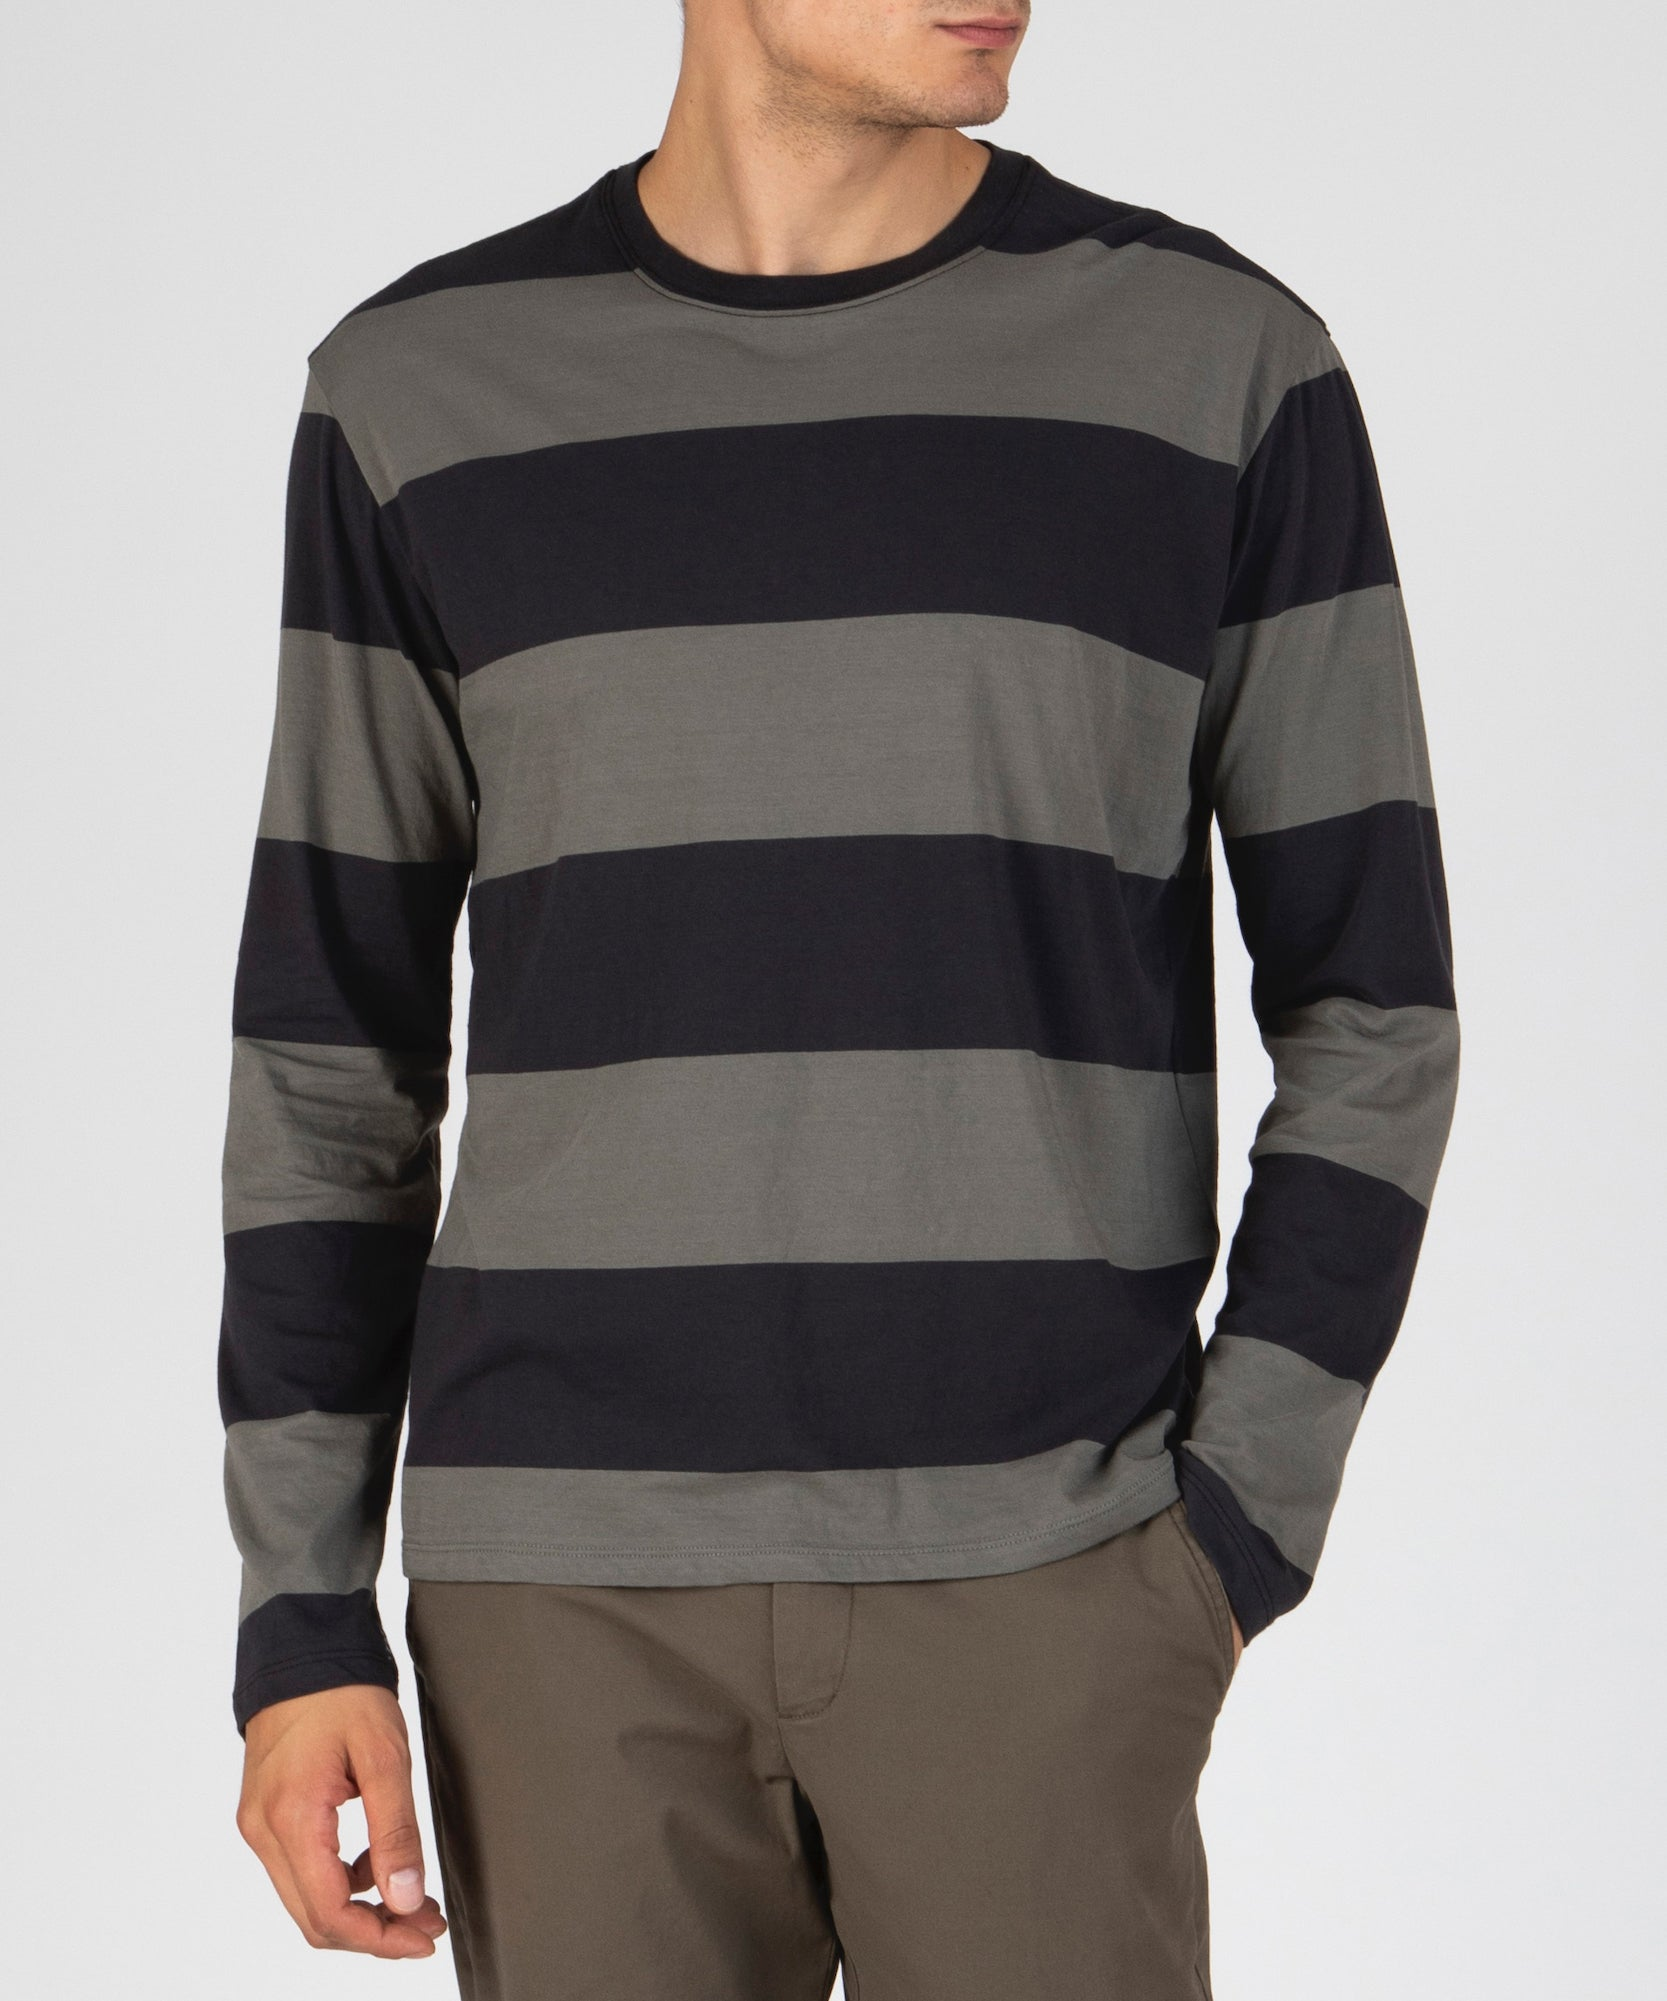 Olive Drab Combo Classic Jersey Rugby Stripe Long Sleeve Crew Neck Tee - Men's Cotton Long Sleeve Tee by ATM Anthony Thomas Melillo